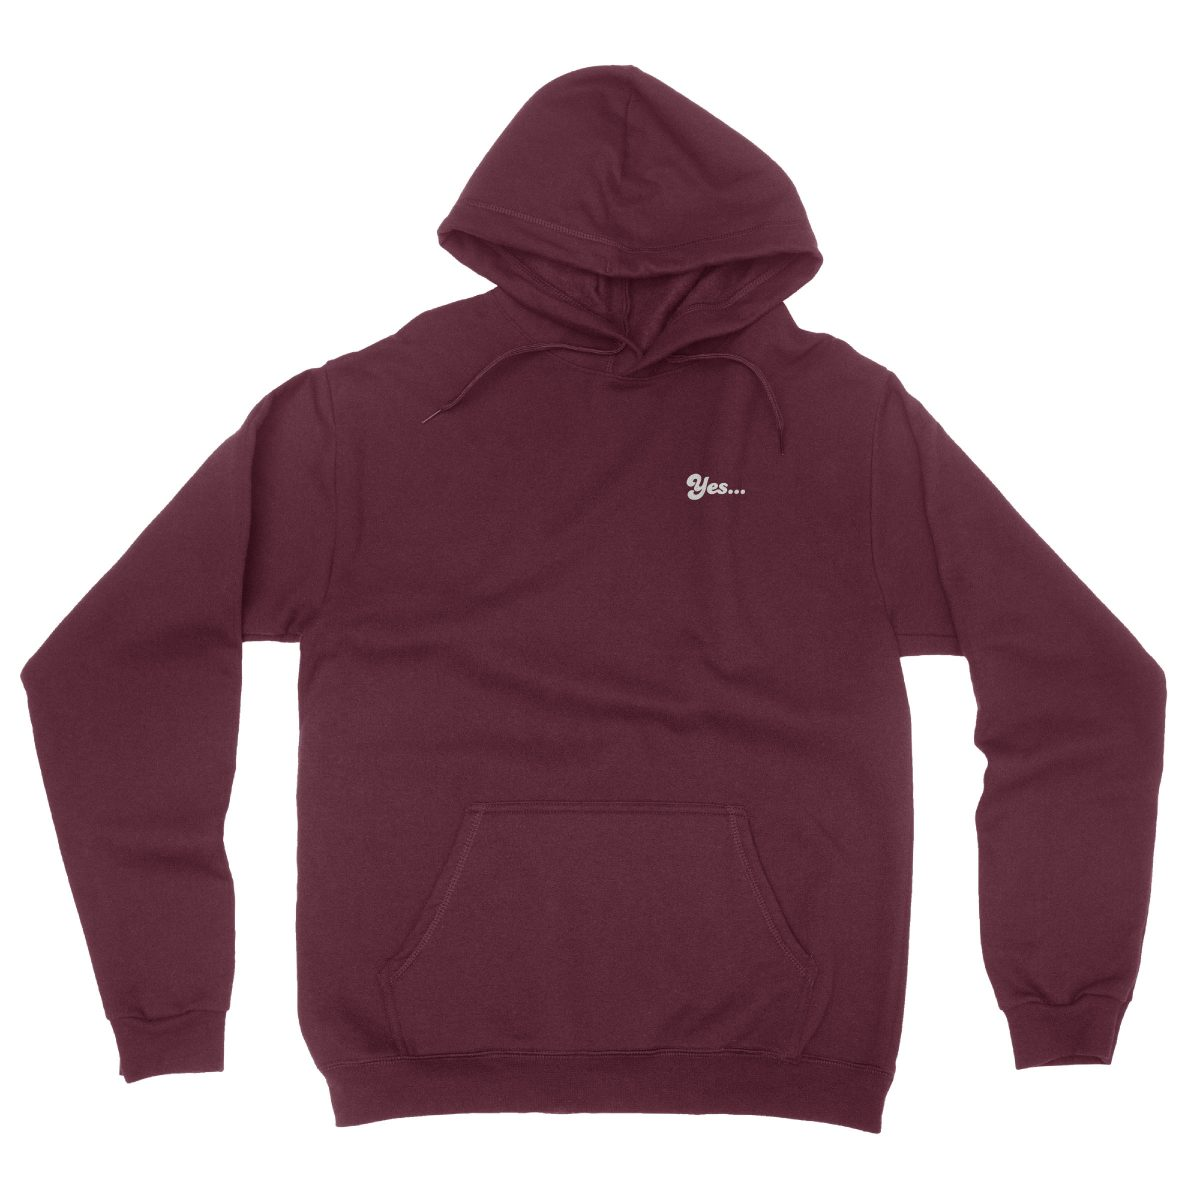 """YES DADDY"" hidden message hoodies in maroon by kikicutt"